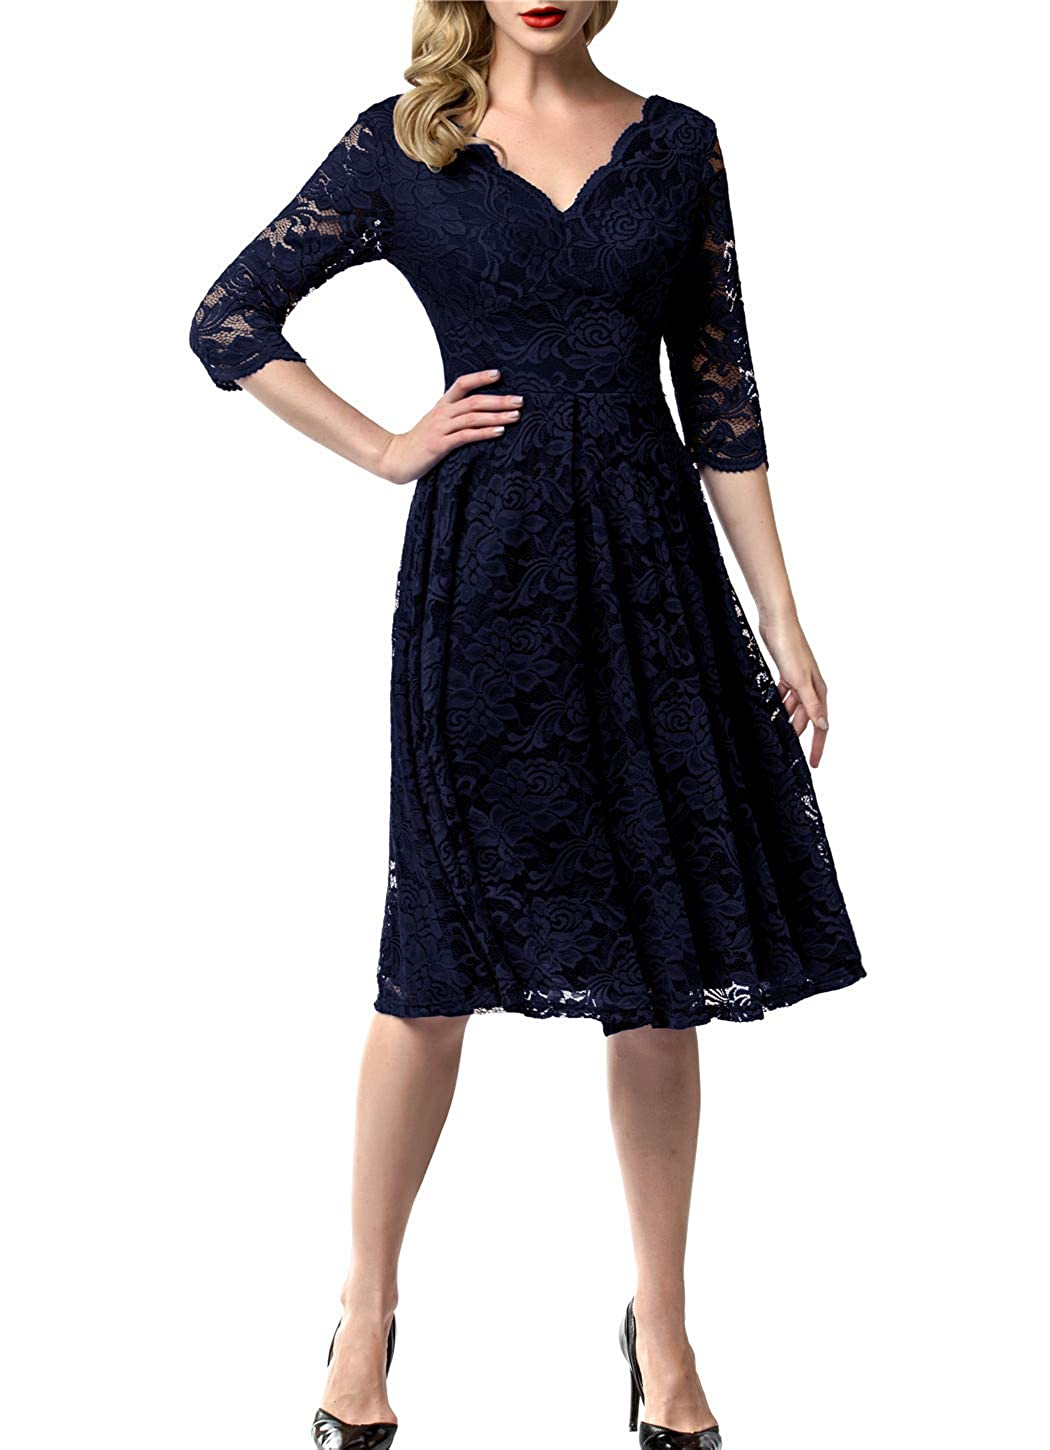 1950s Cocktail Dresses, Party Dresses AONOUR Womens Vintage Floral Lace Bridesmaid Dress 3/4 Sleeve Wedding Party Midi Dress $42.99 AT vintagedancer.com